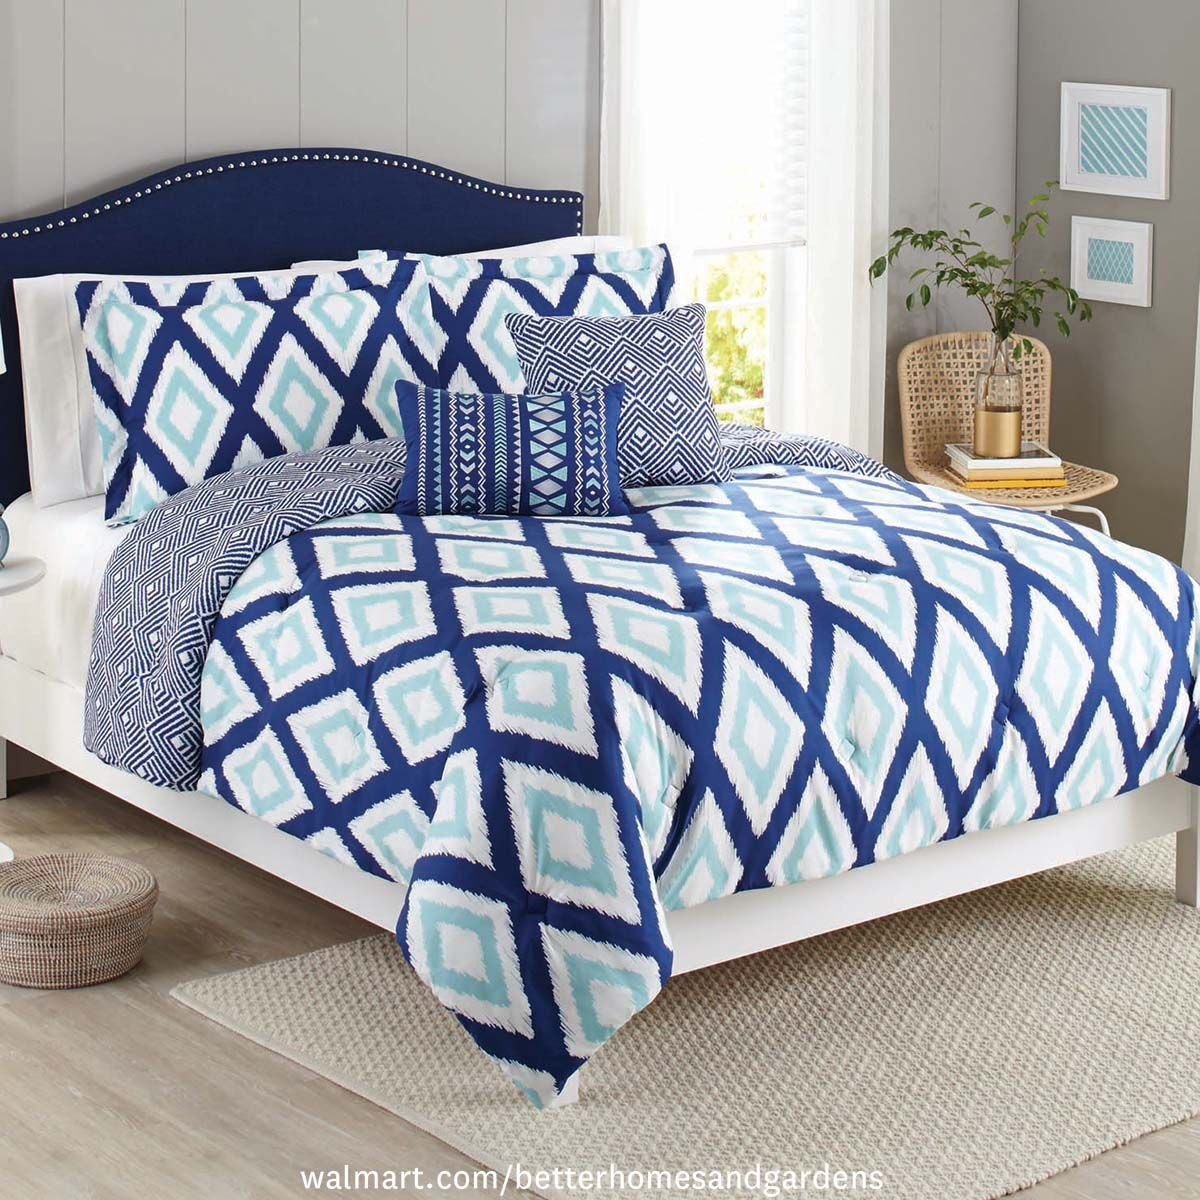 ip walmart gardens collection sets solid homes com and quilt better